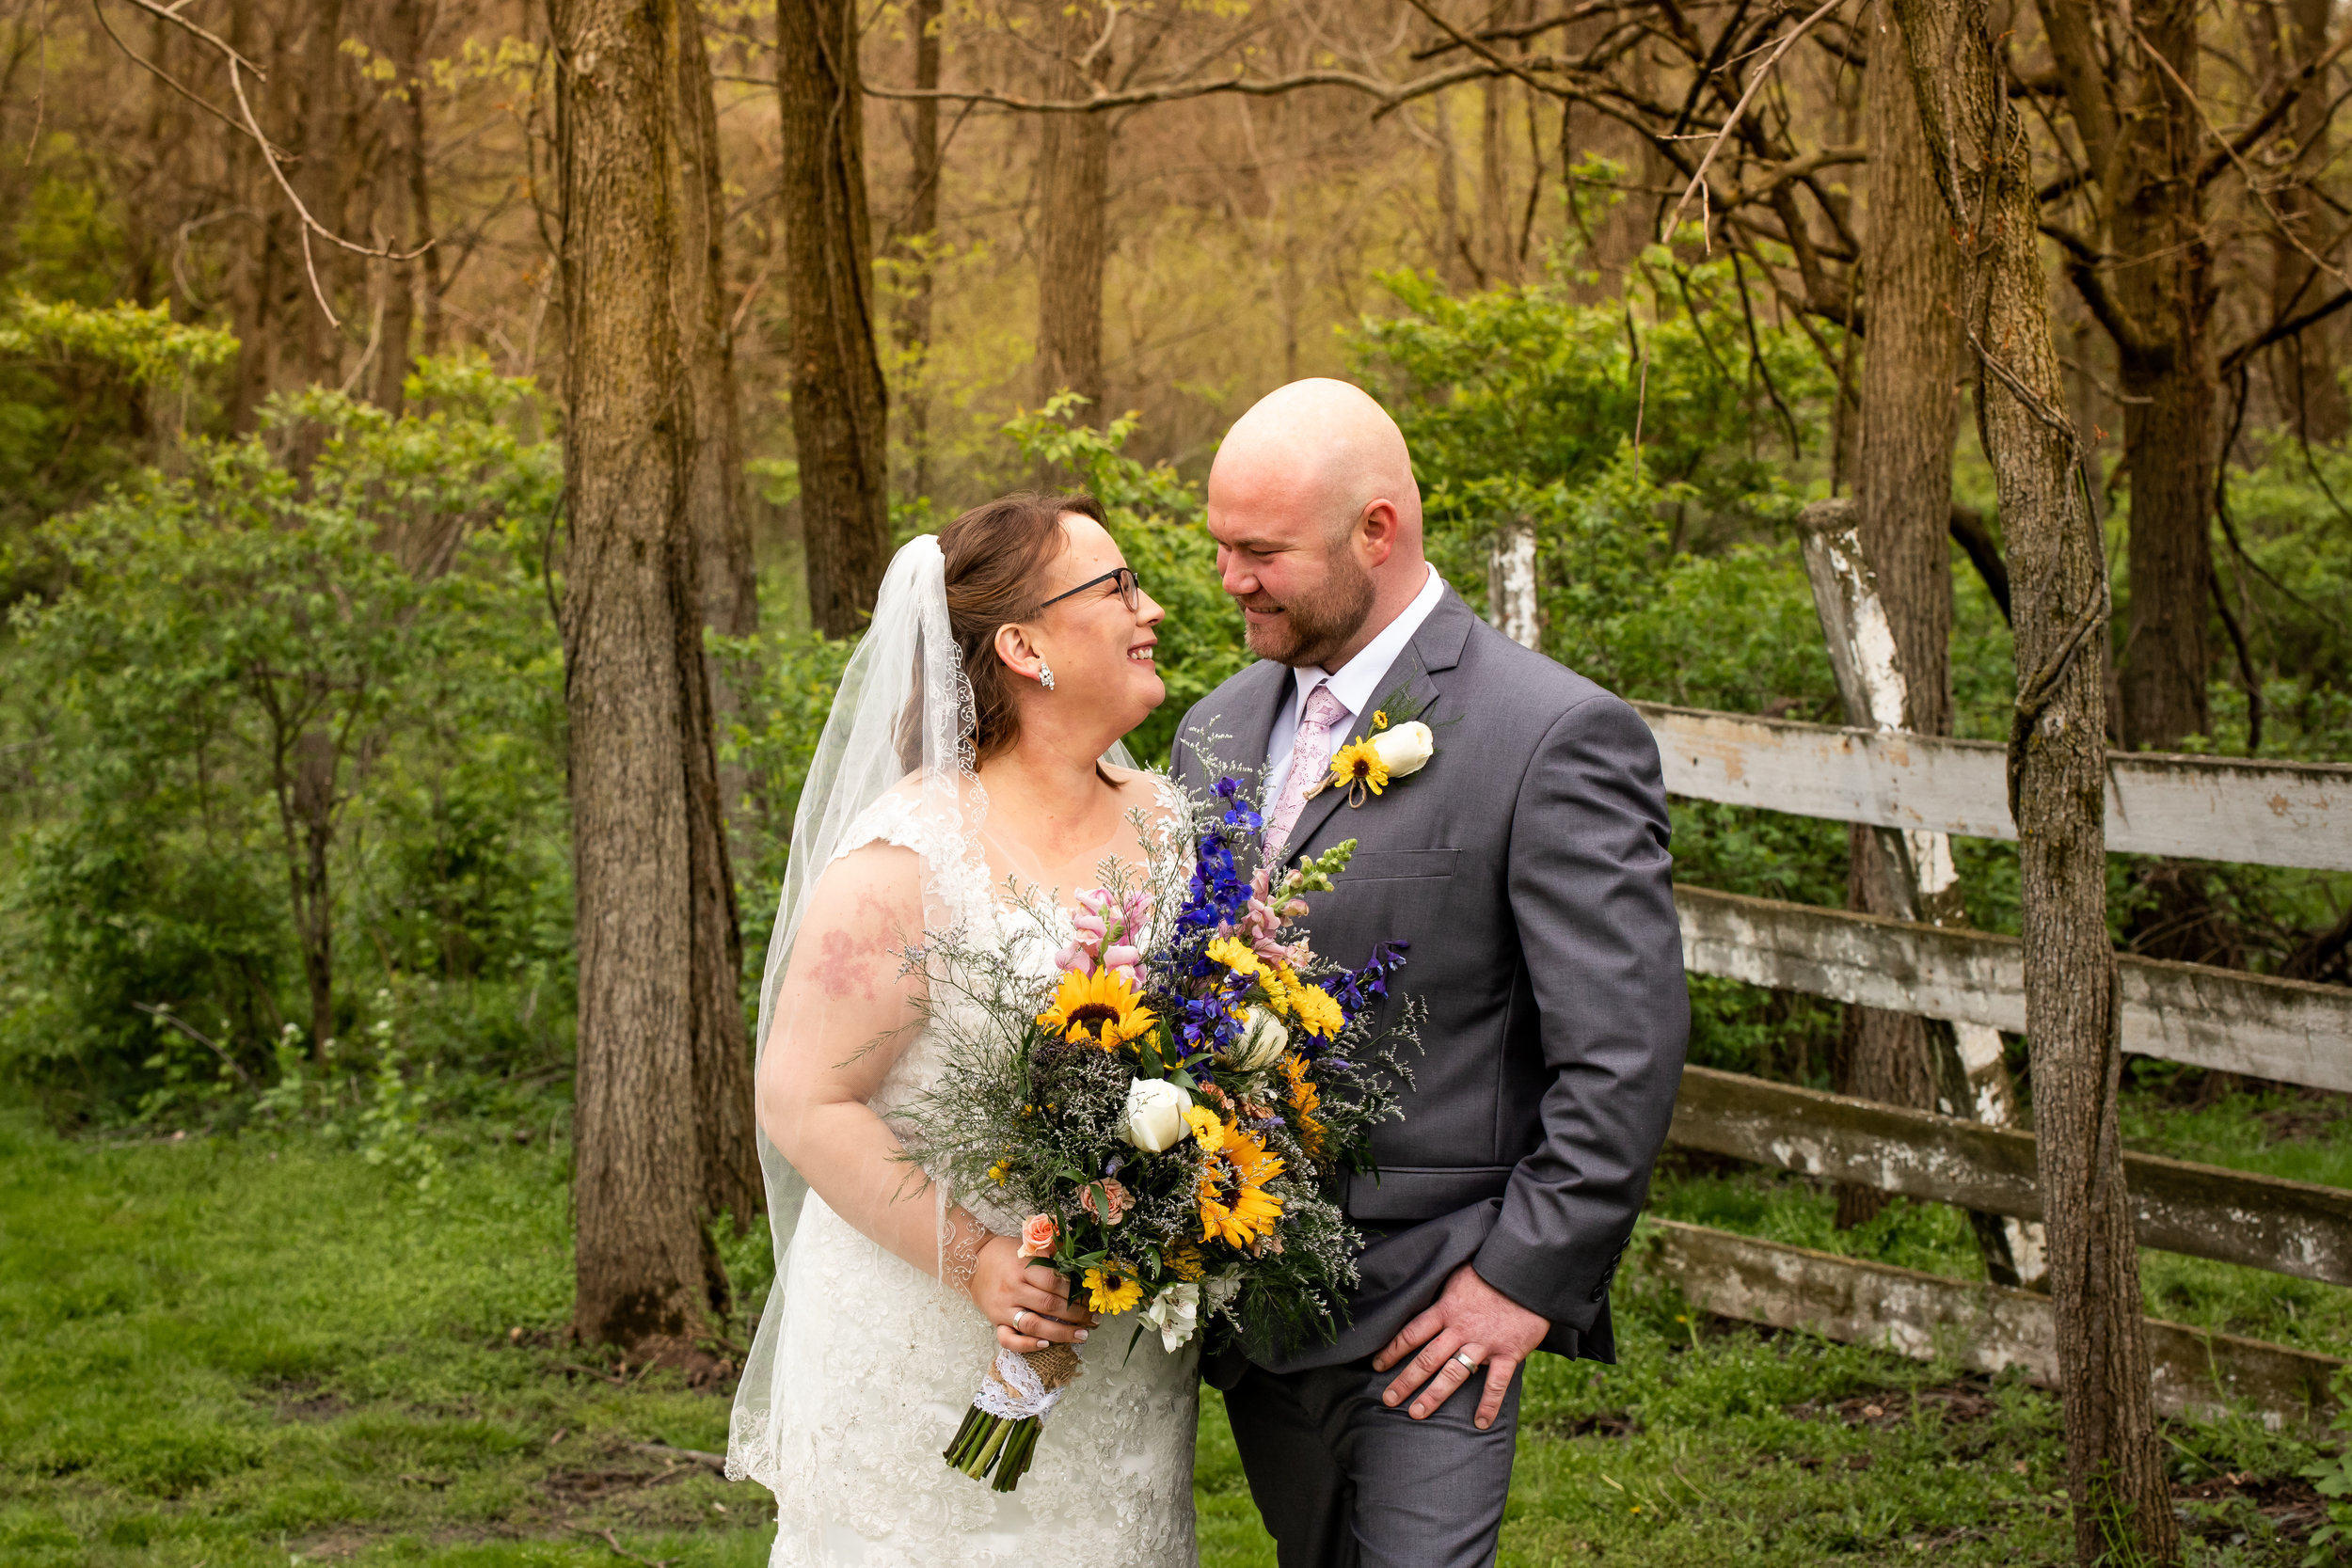 Wedding-Photography-The-Lodge-At-River-Valley-Farm